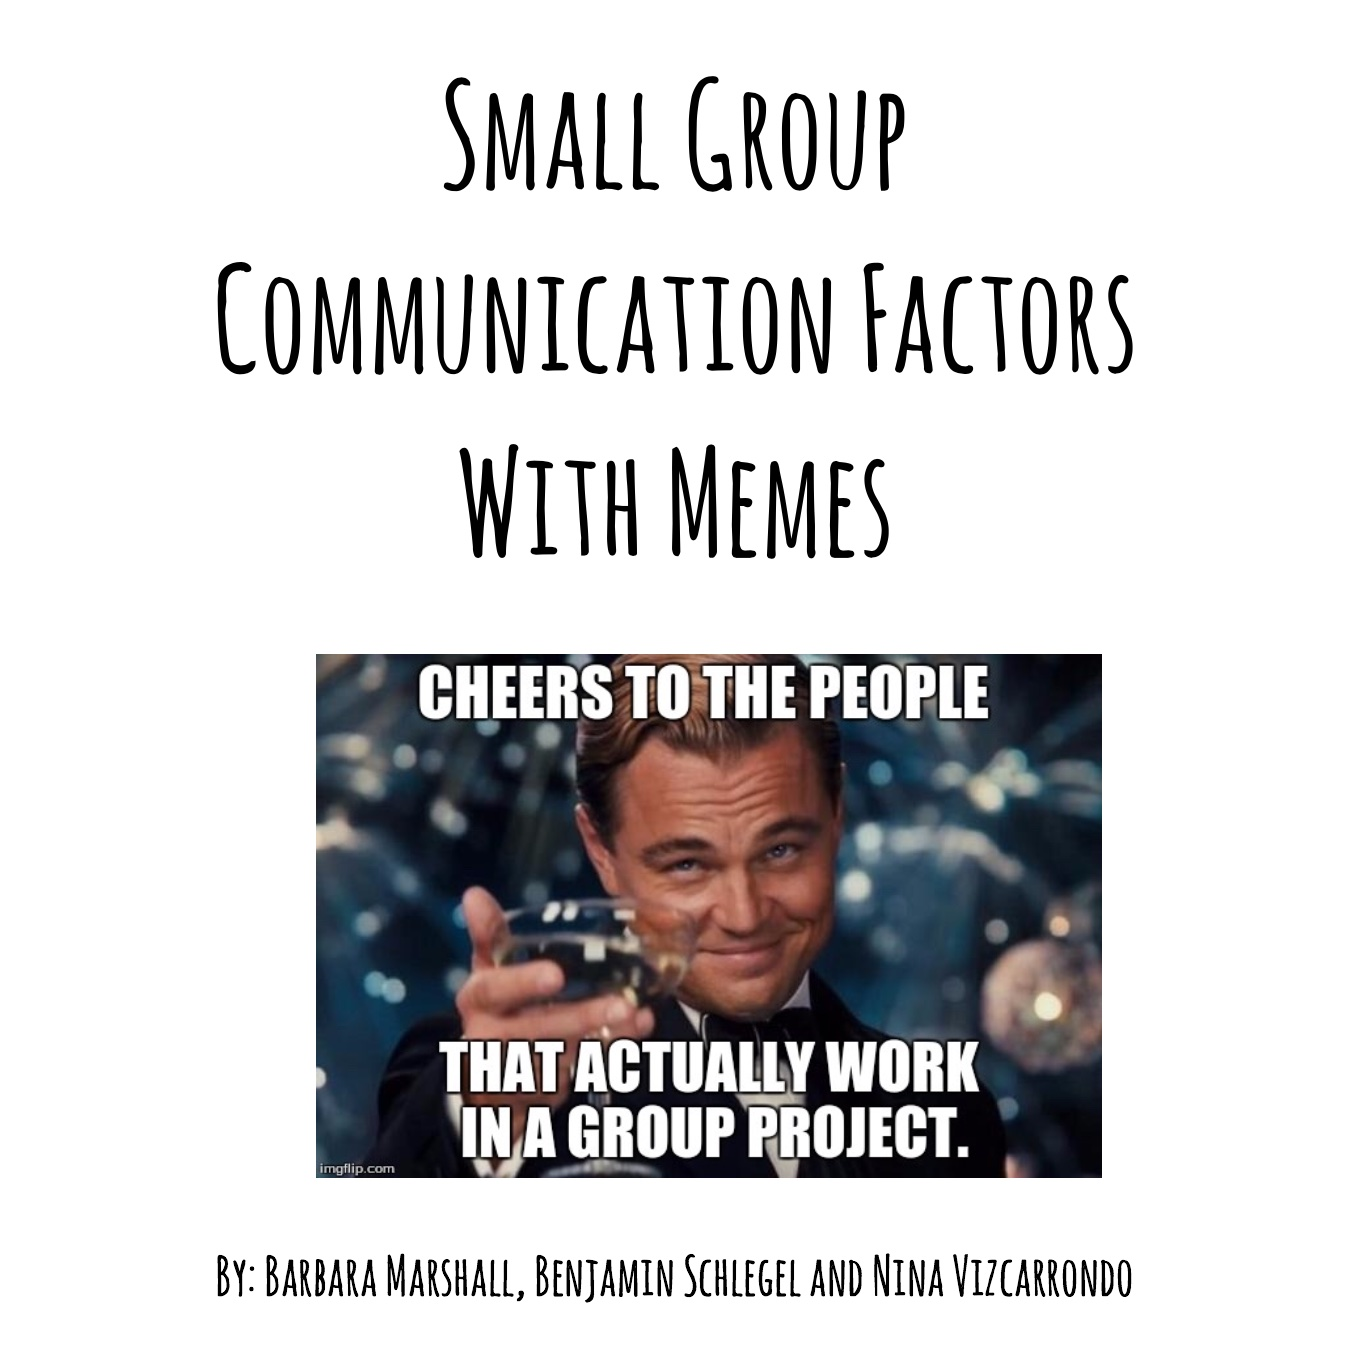 Small Group Communication Factors